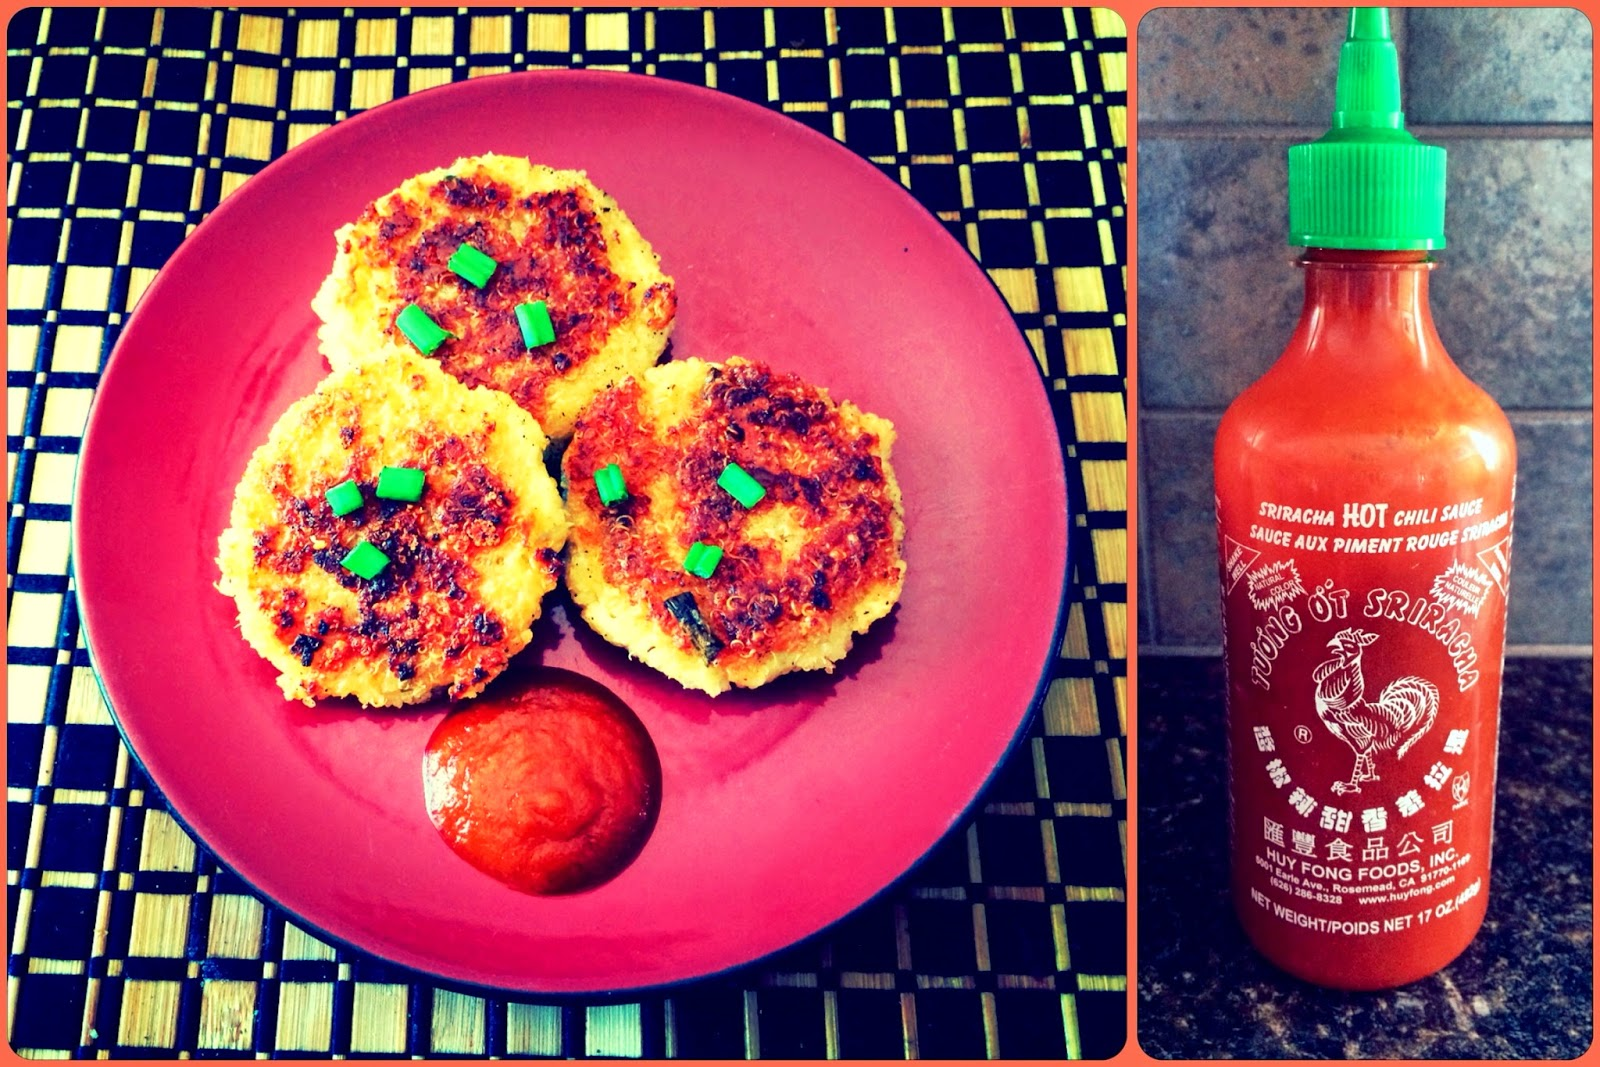 Pan-Fried Quinoa Cakes with Cheese/Sriracha sauce